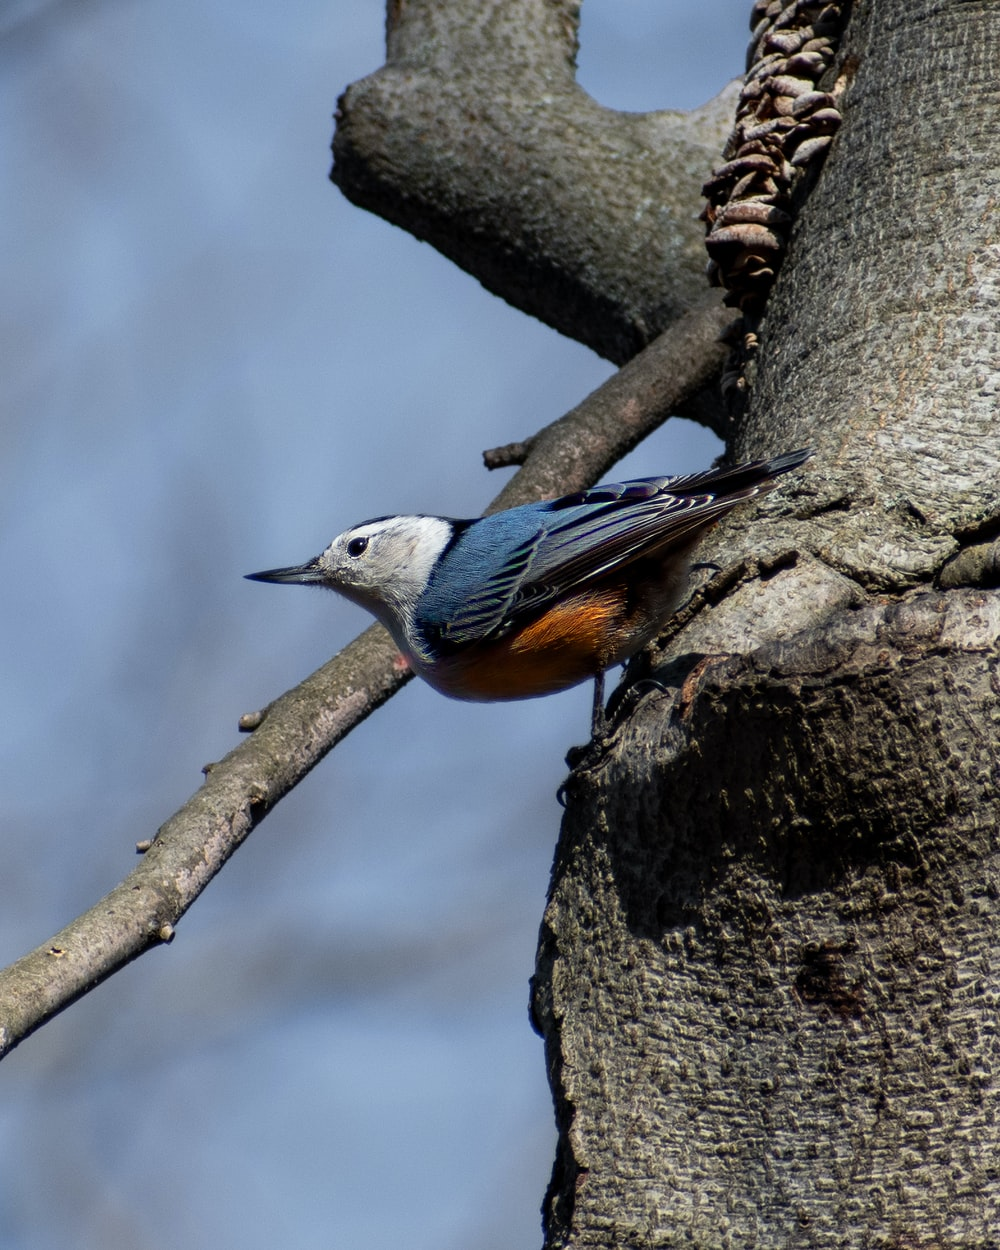 blue and brown bird on tree branch during daytime